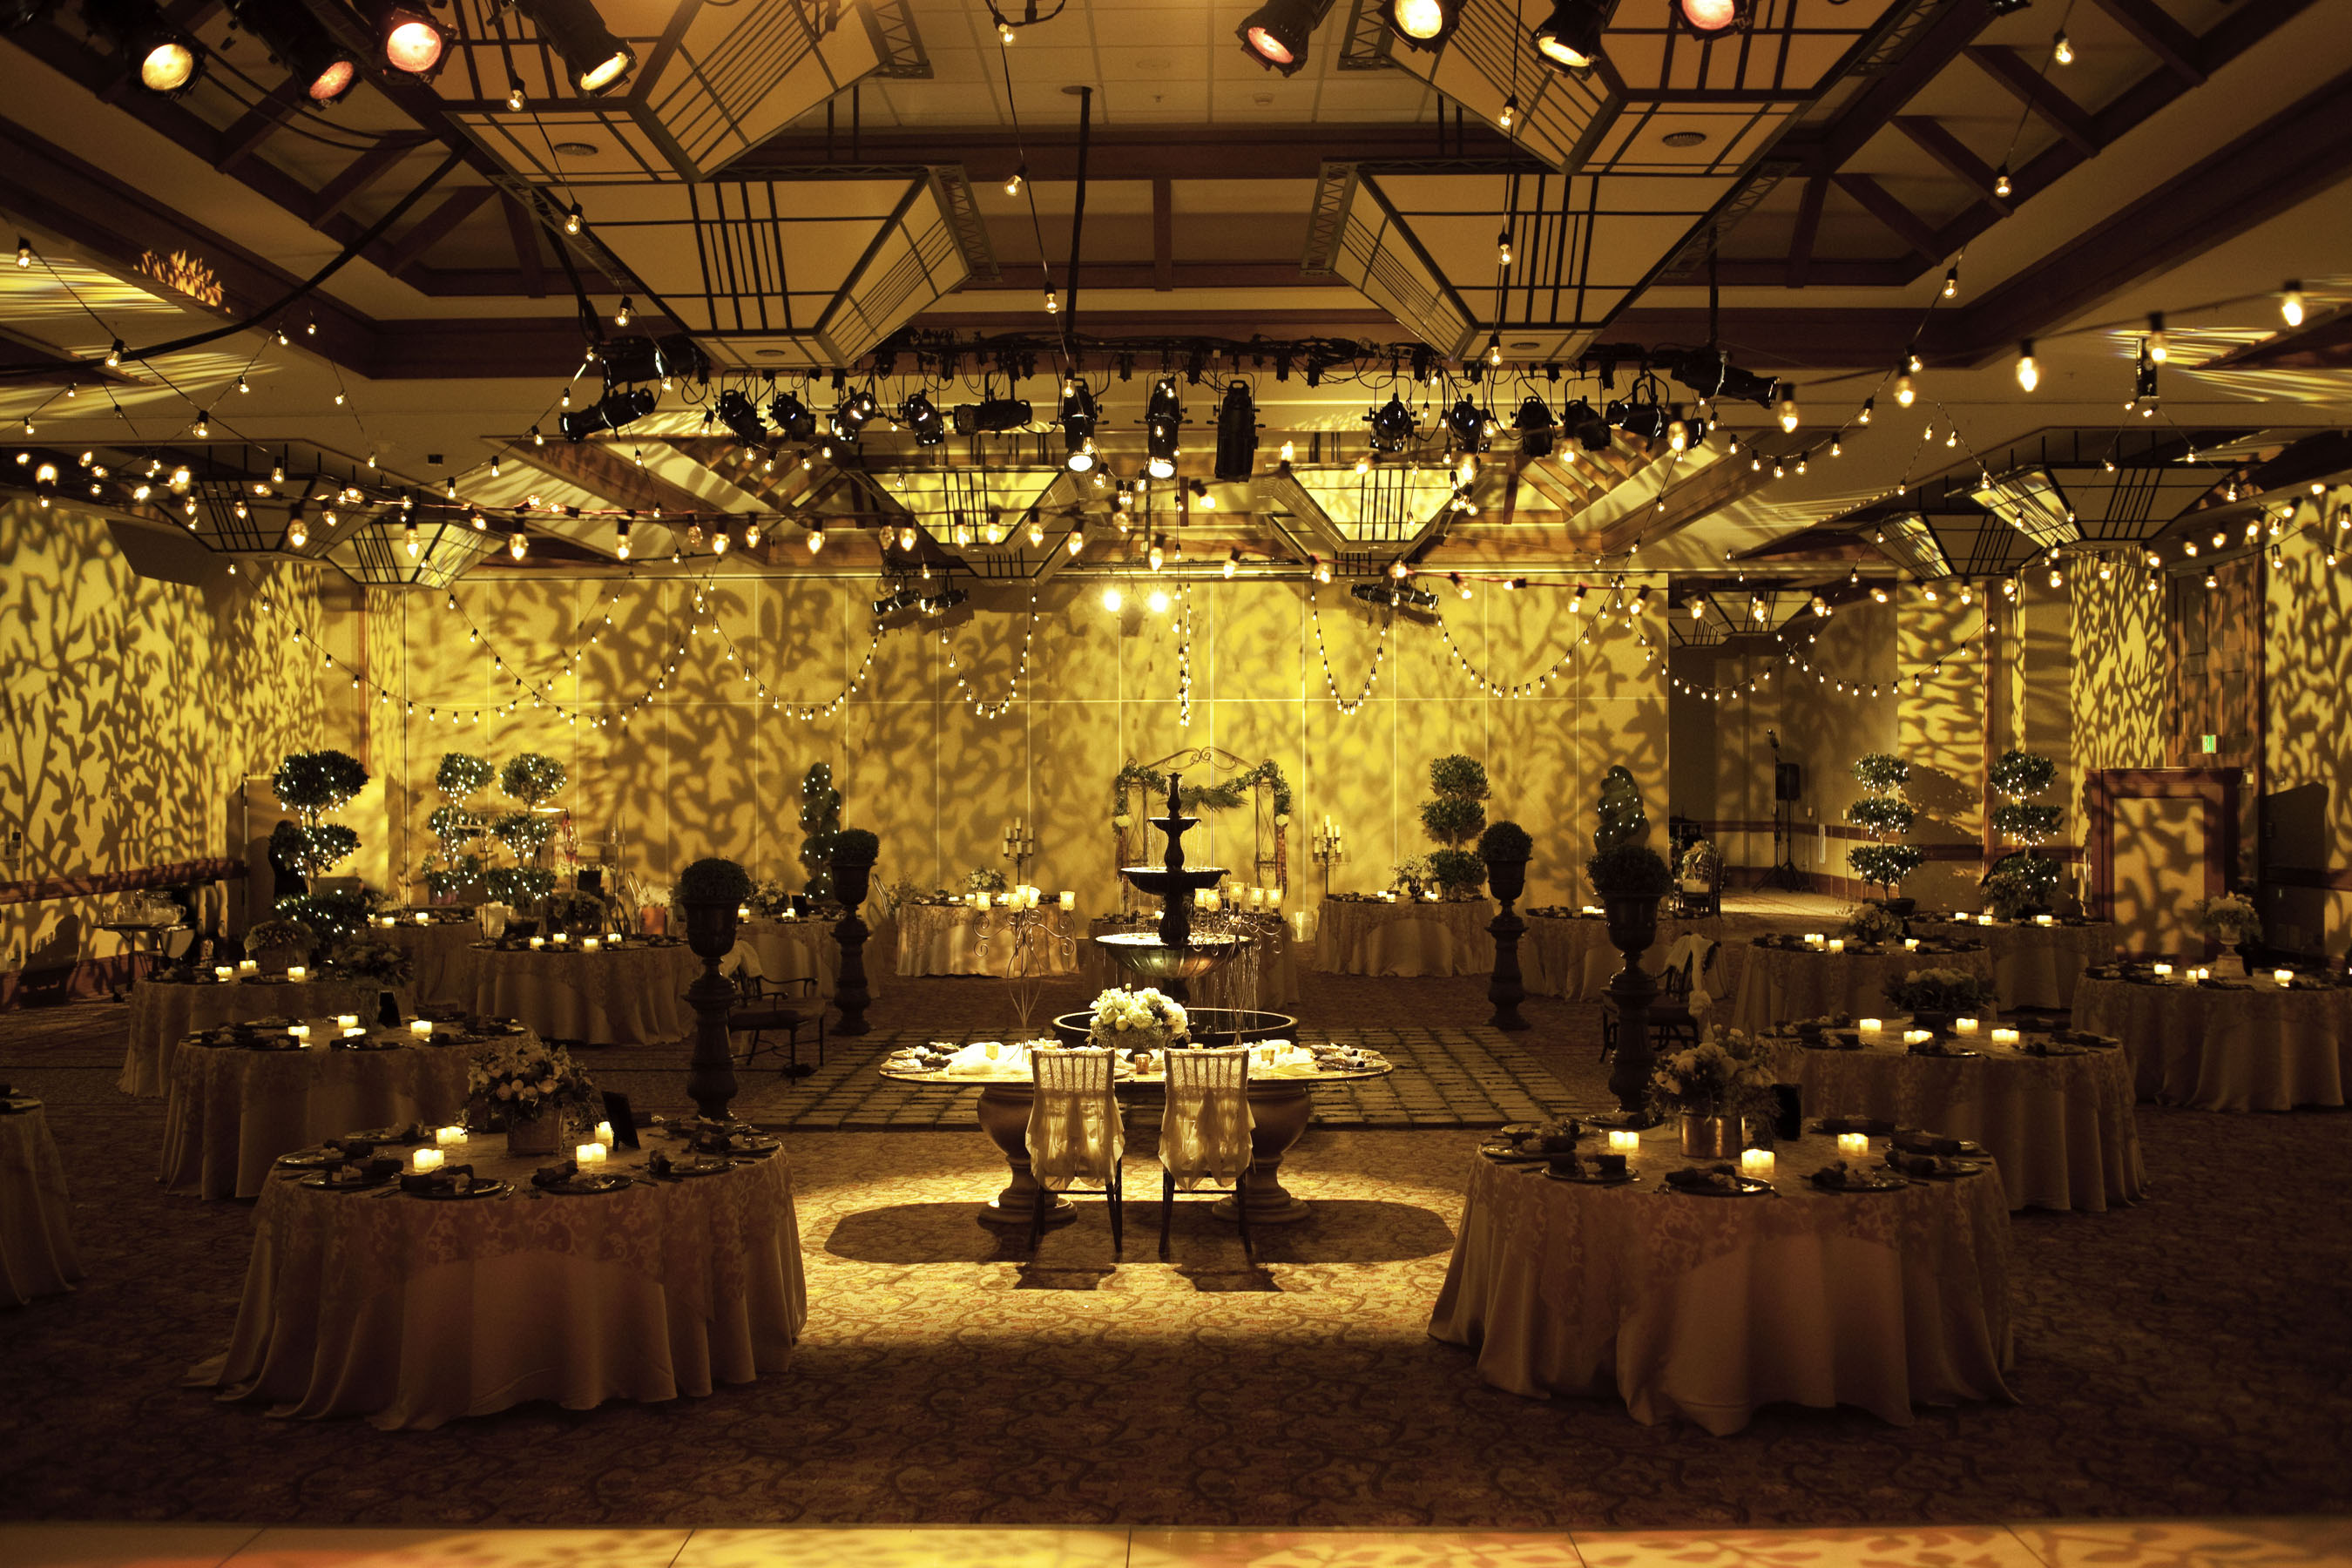 wedding venue: indoor garden decor